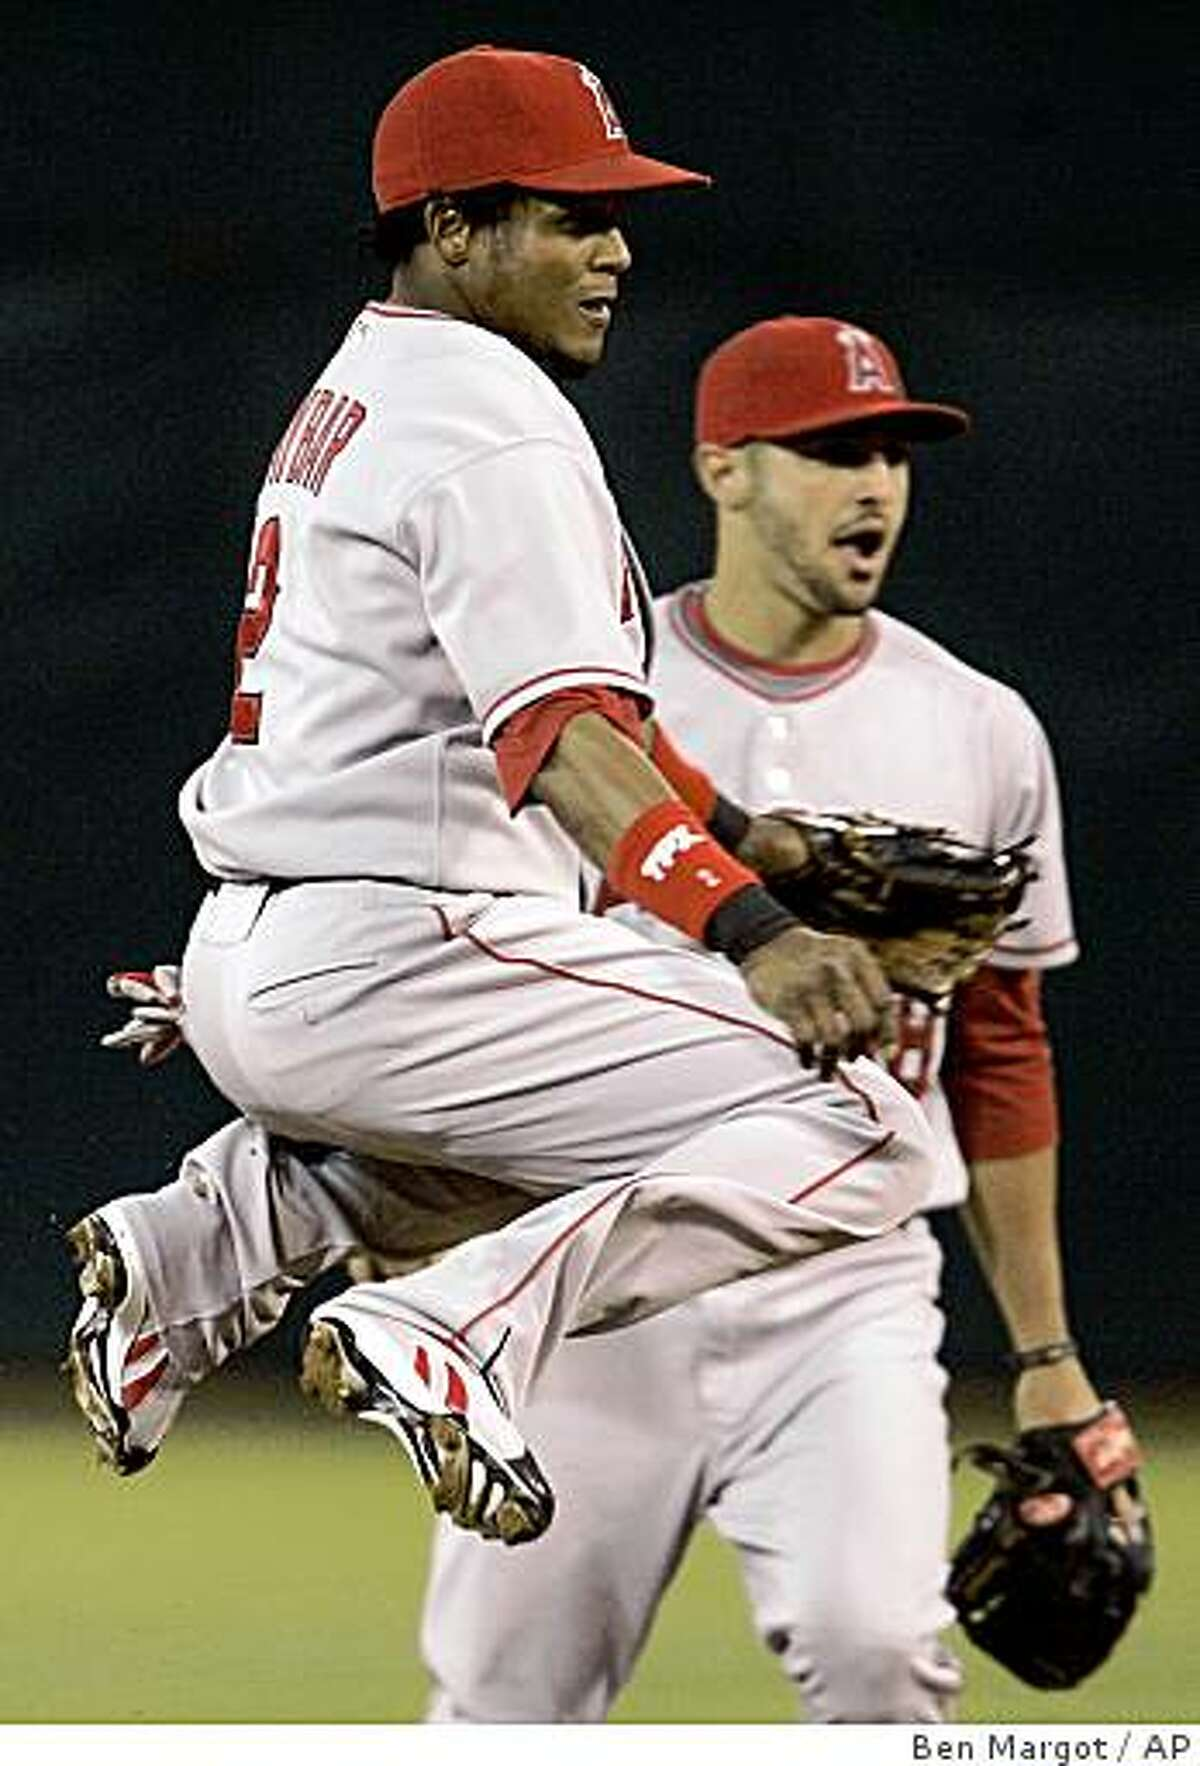 Los Angeles Angels short stop Erick Aybar (2) jumps to avoid Oakland Athletics' Travis Buck (not shown) after completing a double play throw to first base in the first inning of a baseball game, Wednesday, Sept. 17, 2008, in Oakland, Calif. Angels' second baseman Sean Rodriguez, right, backs up the play. (AP Photo/Ben Margot)